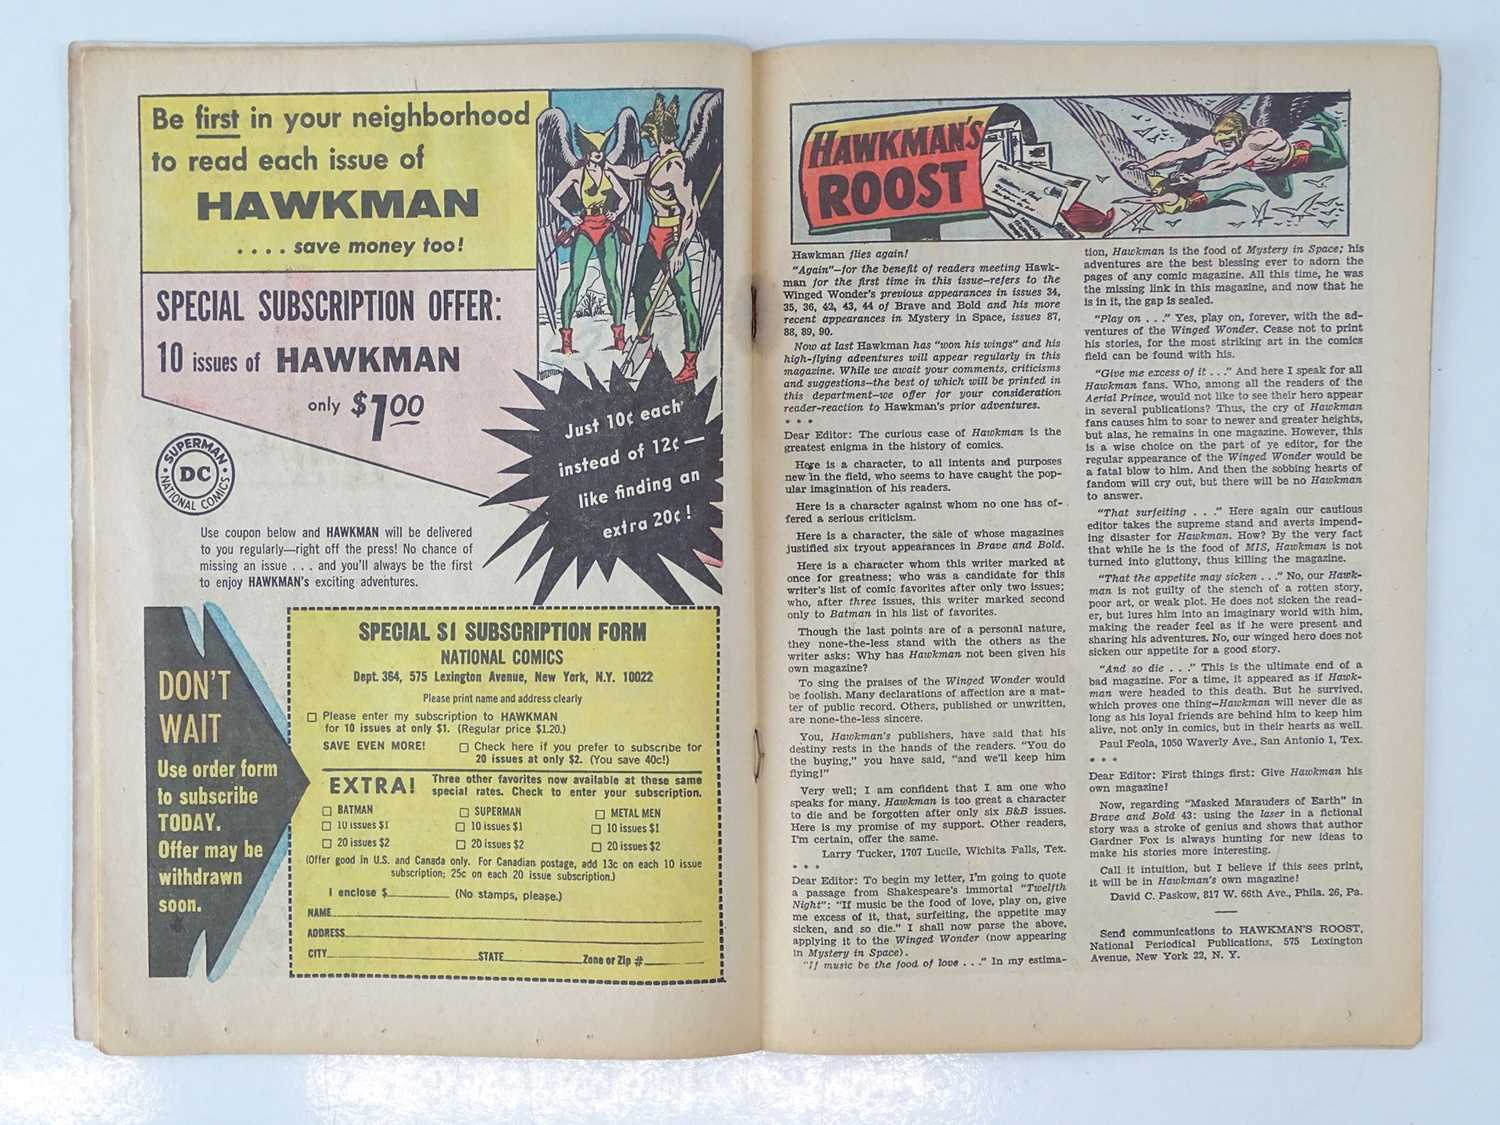 """HAWKMAN #1 - (DC - UK Cover Price) - First solo title for Hawkman gets after appearances in """"Brave - Image 5 of 9"""